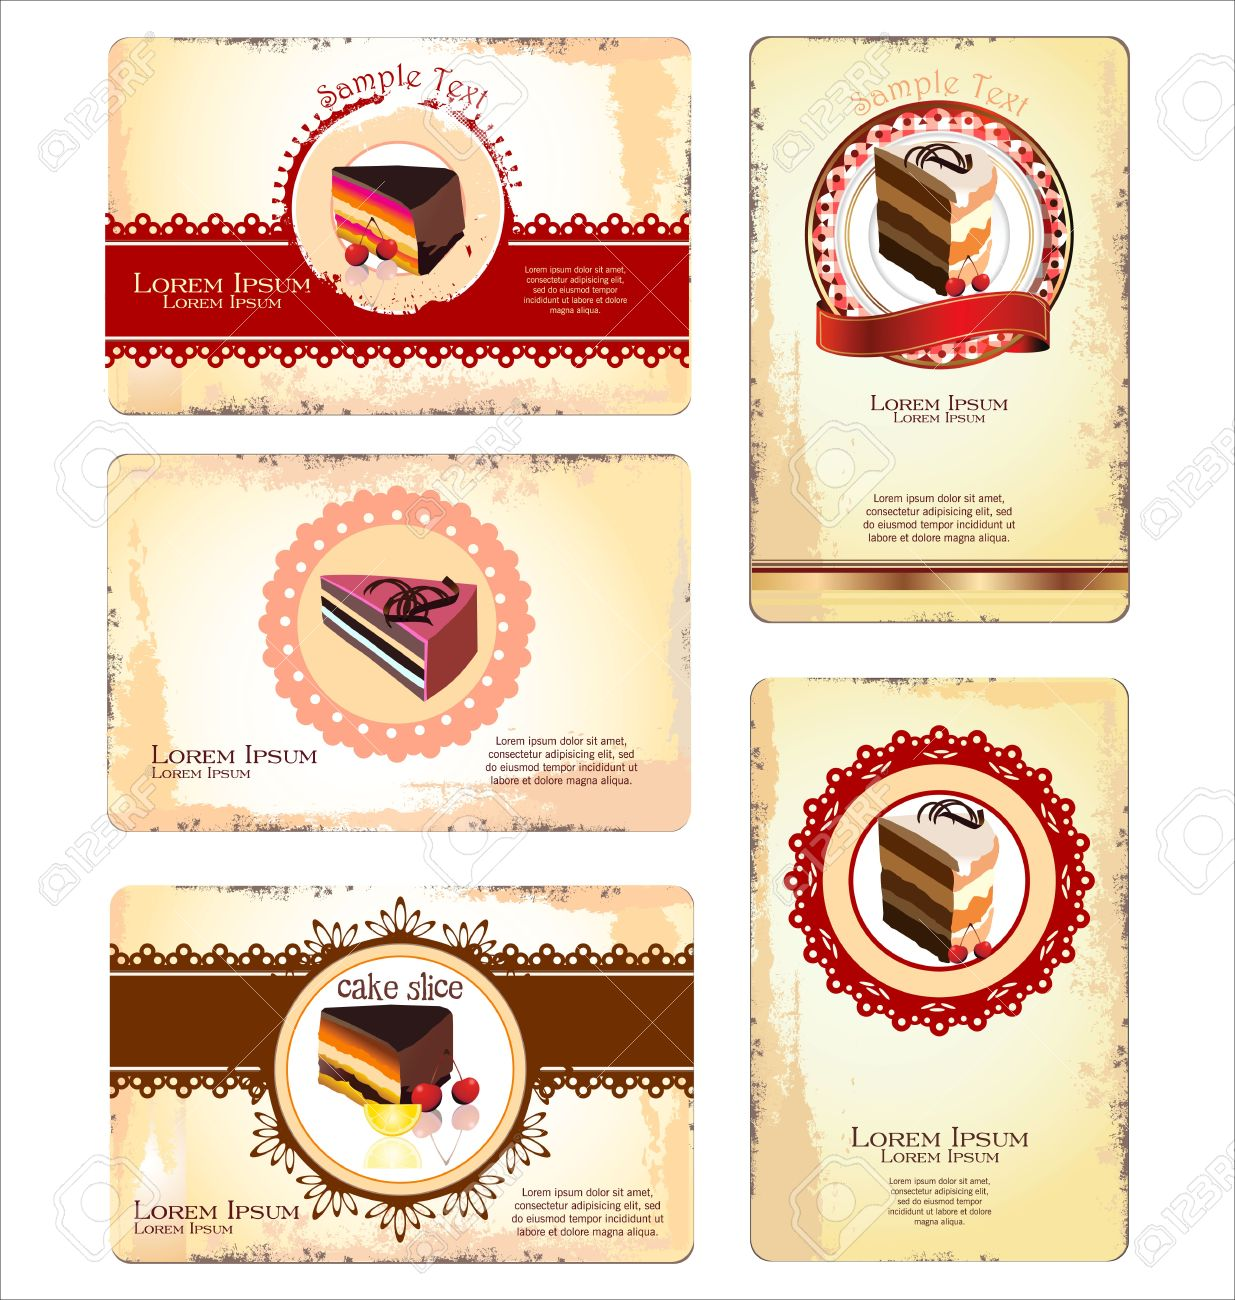 Coffeetea And Cakes Menu Or Business Card Template Royalty Free - Cake business card template